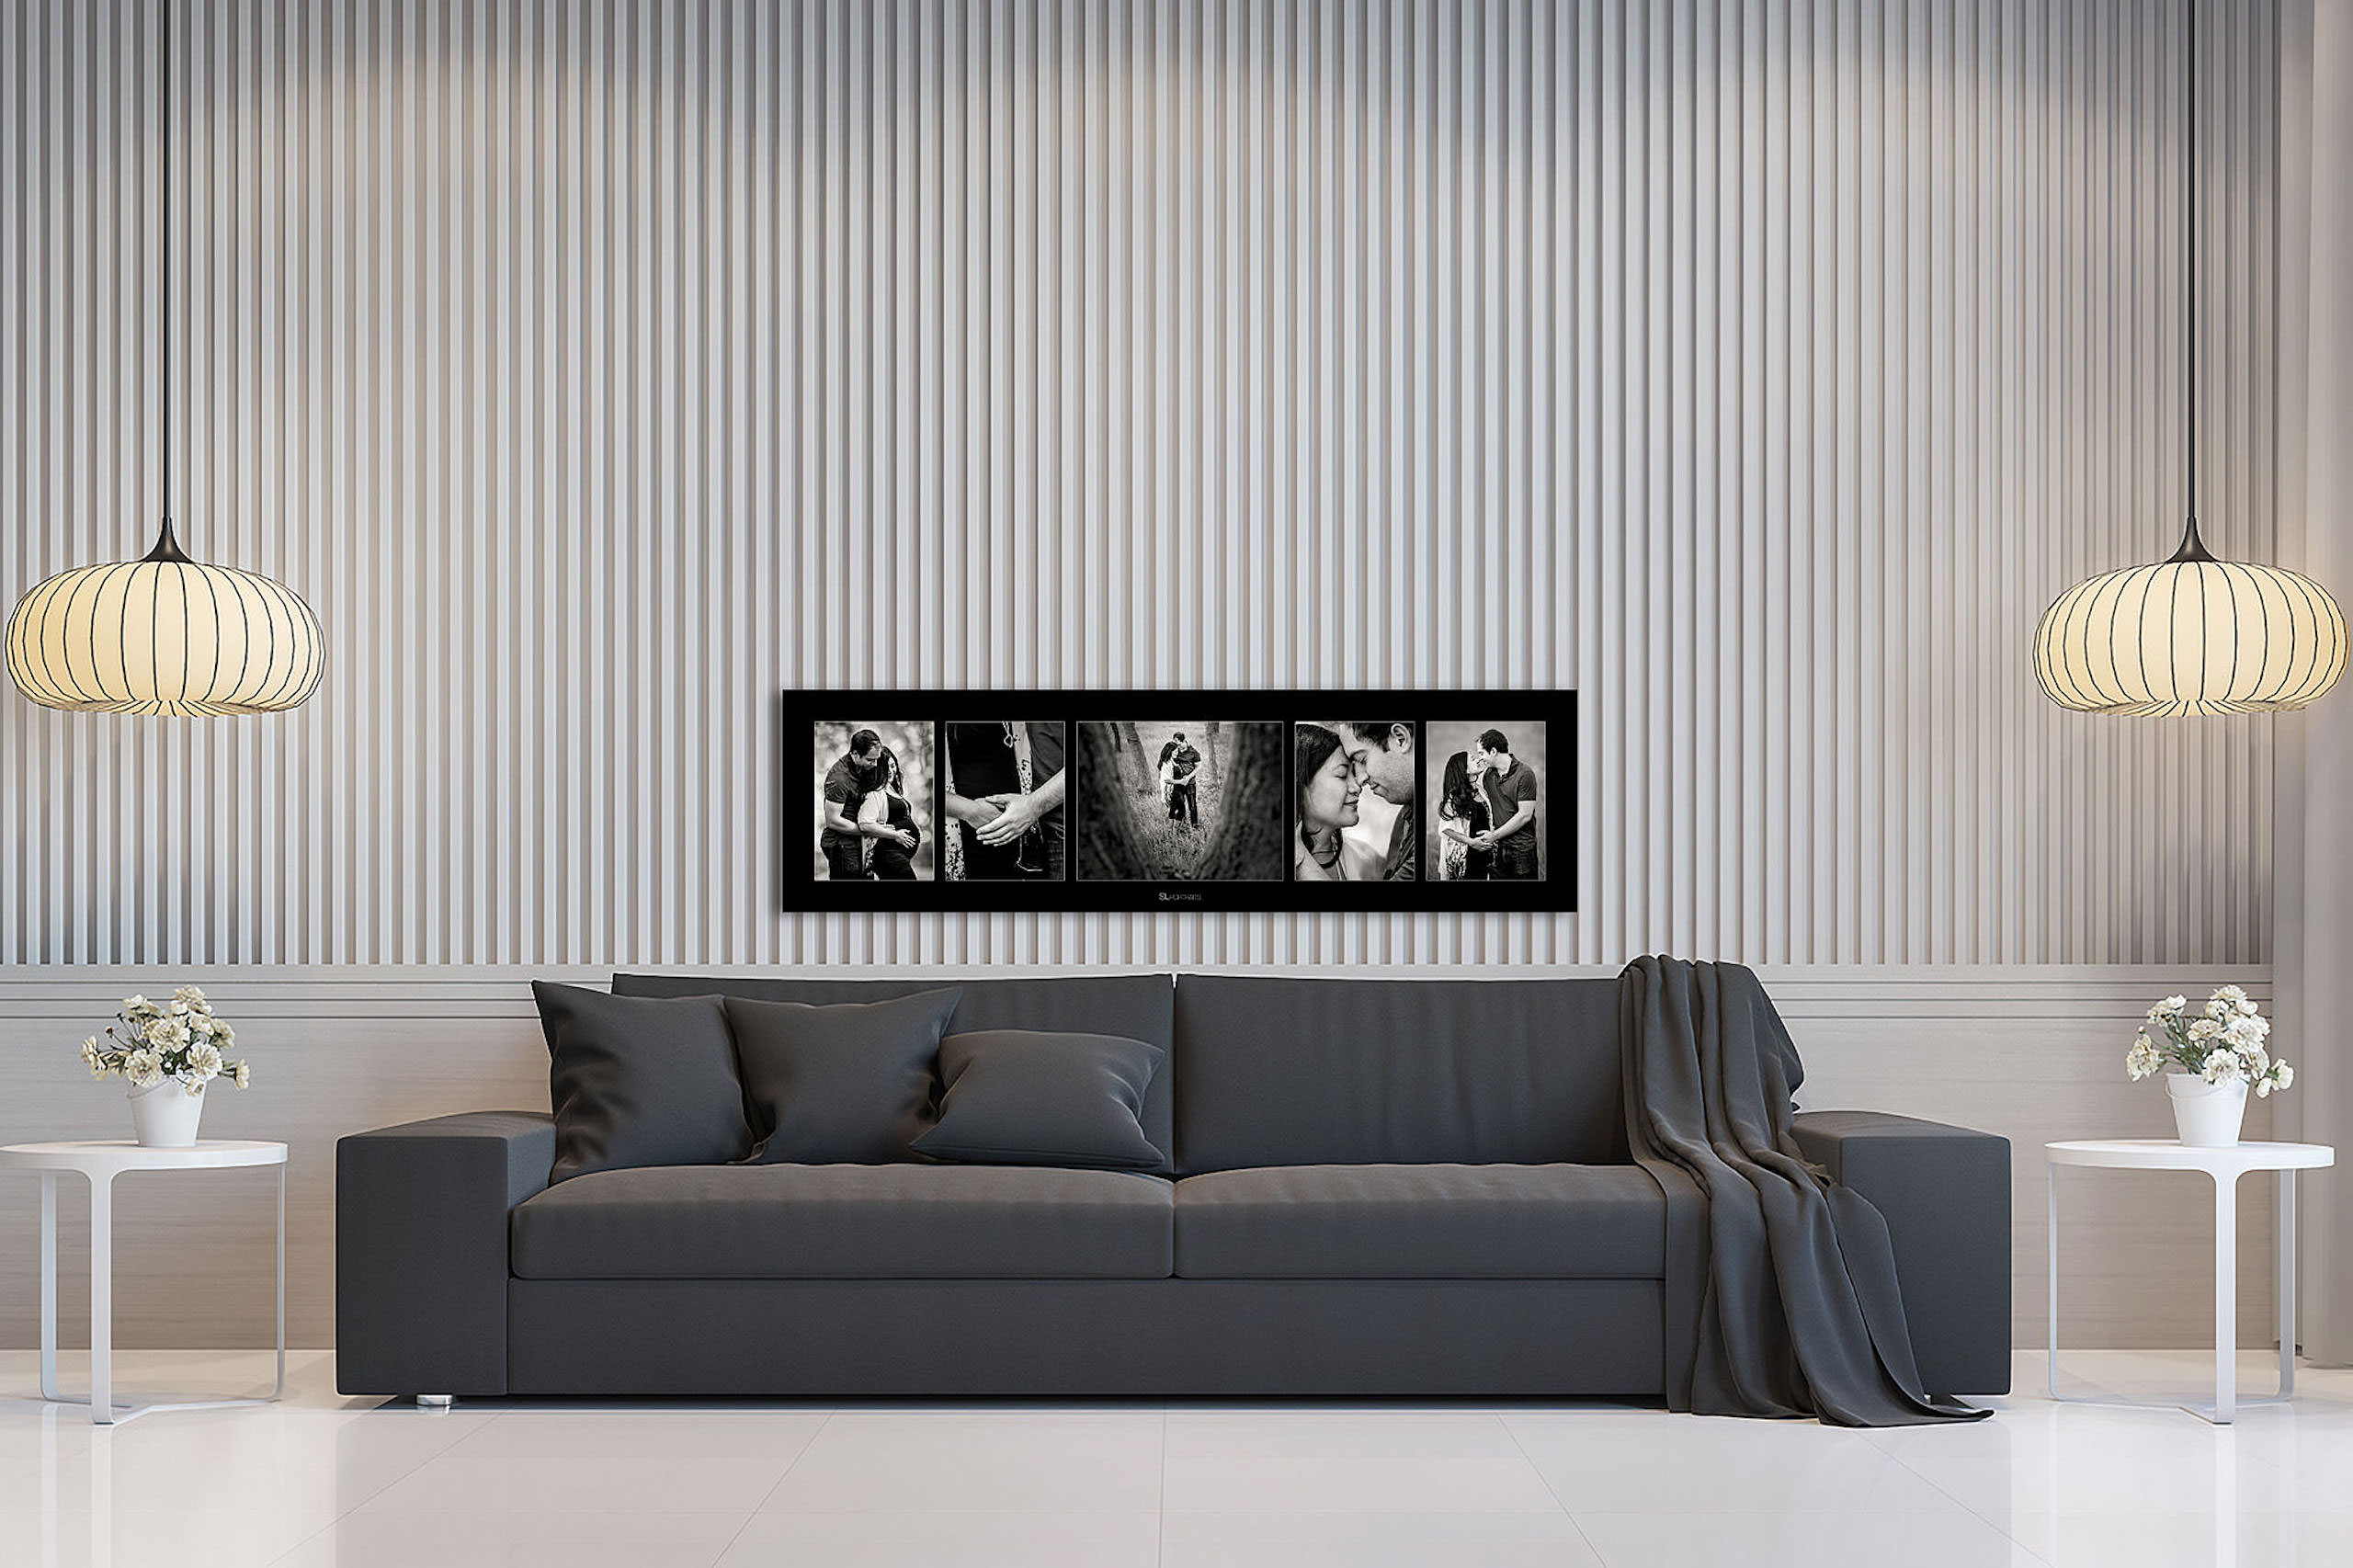 large wall art collection of a pregnant couple hung above a couch by top calgary portrait photographer sean leblanc